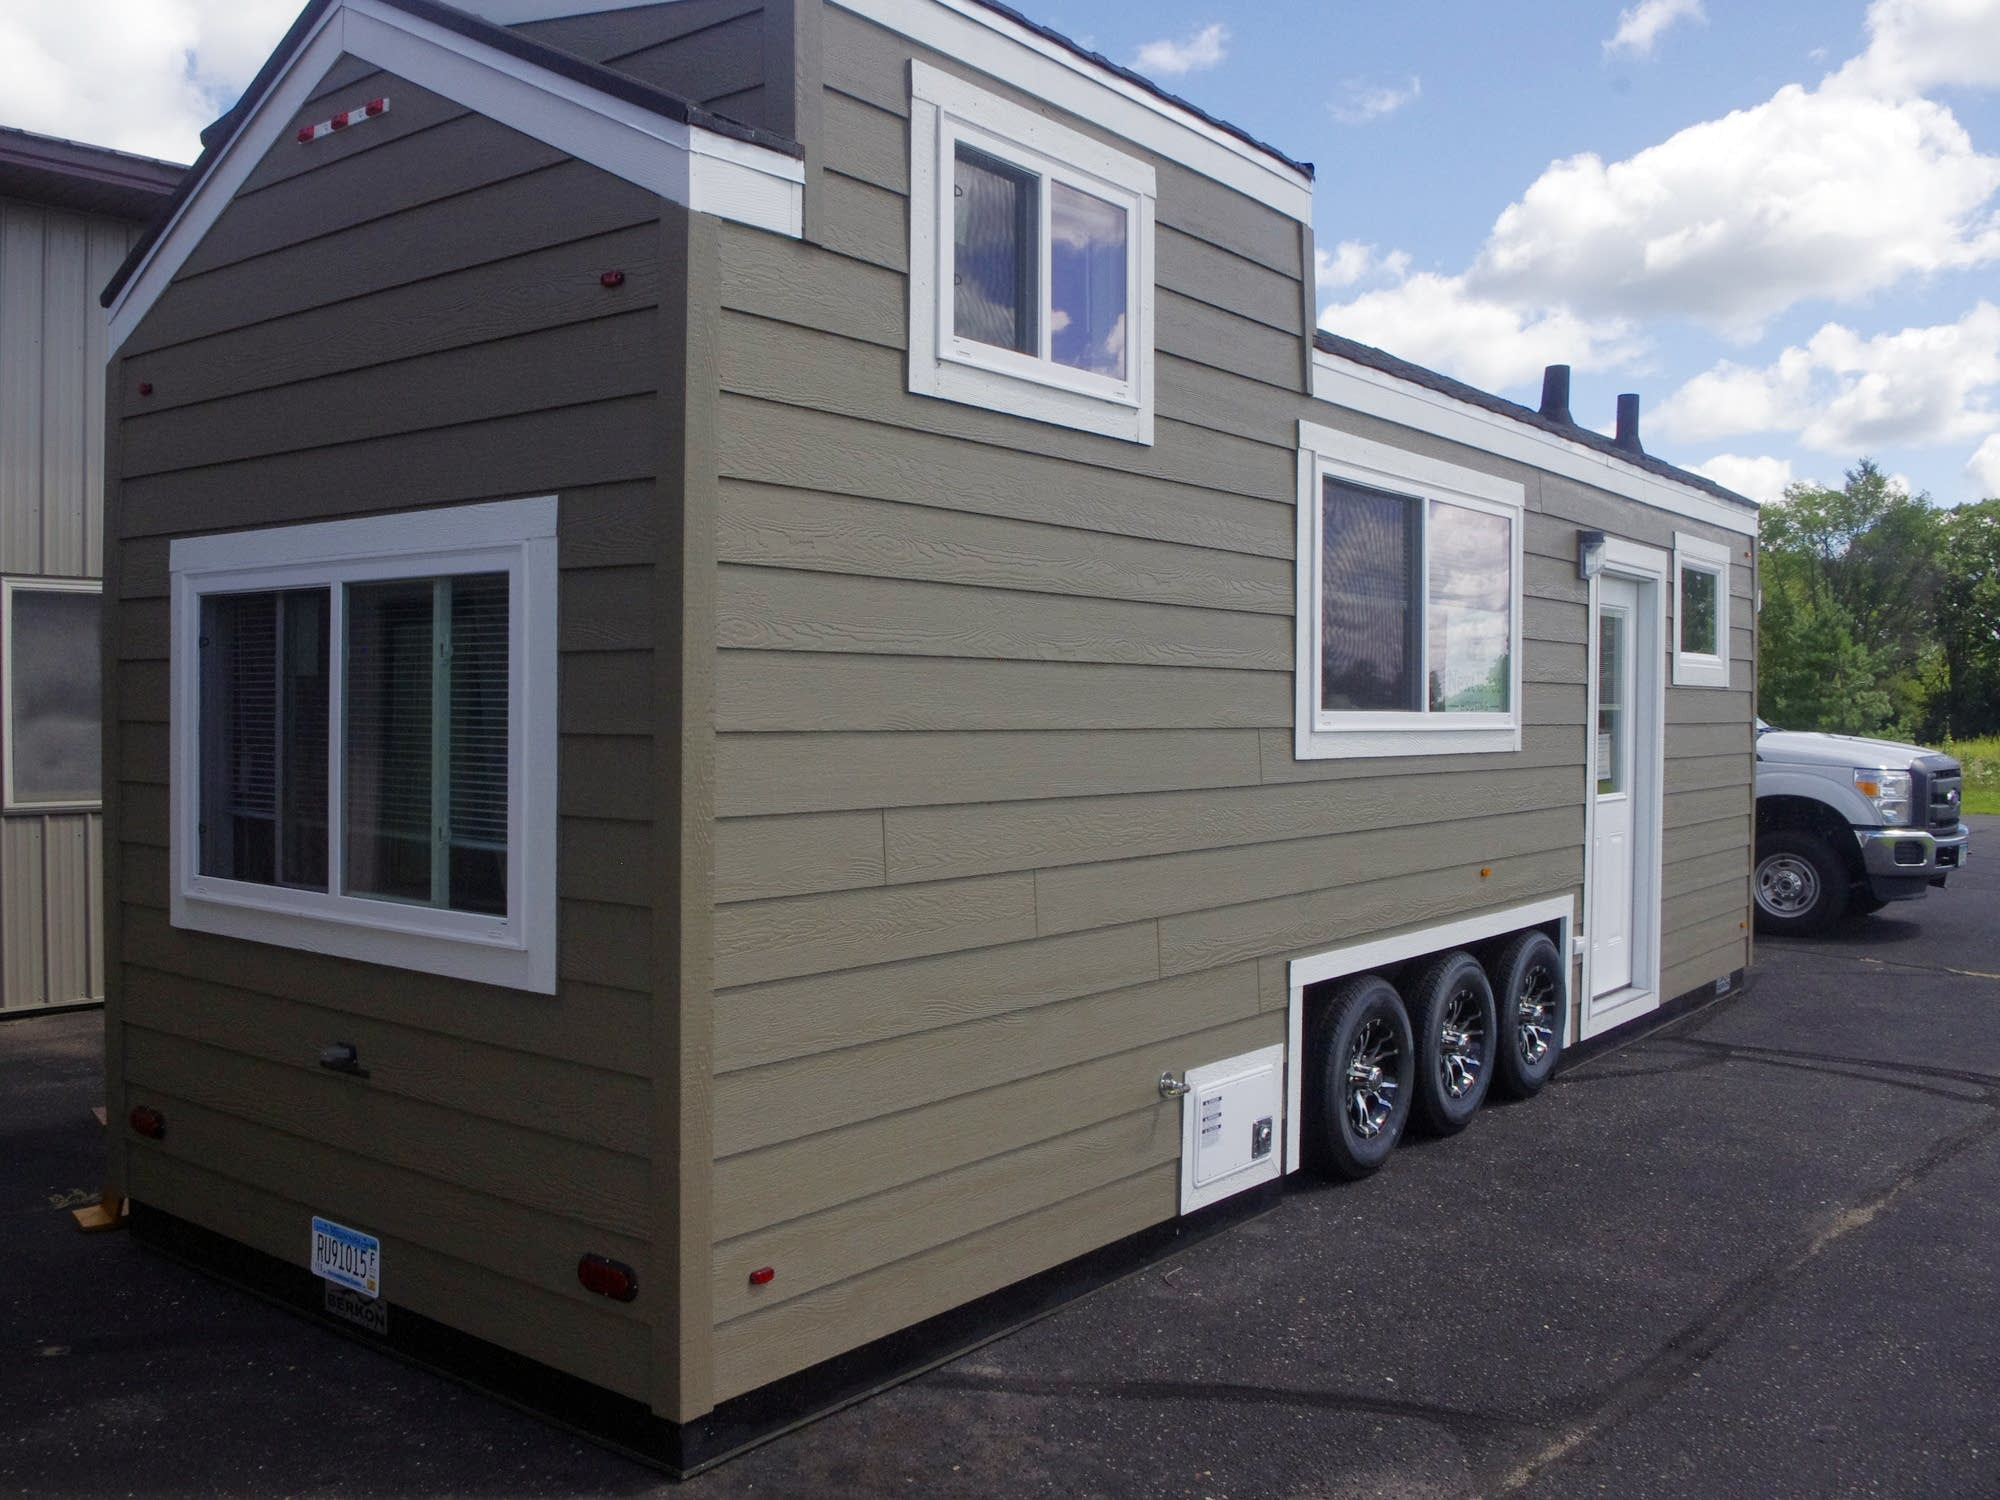 Granny pods find lukewarm reception in Minnesota cities